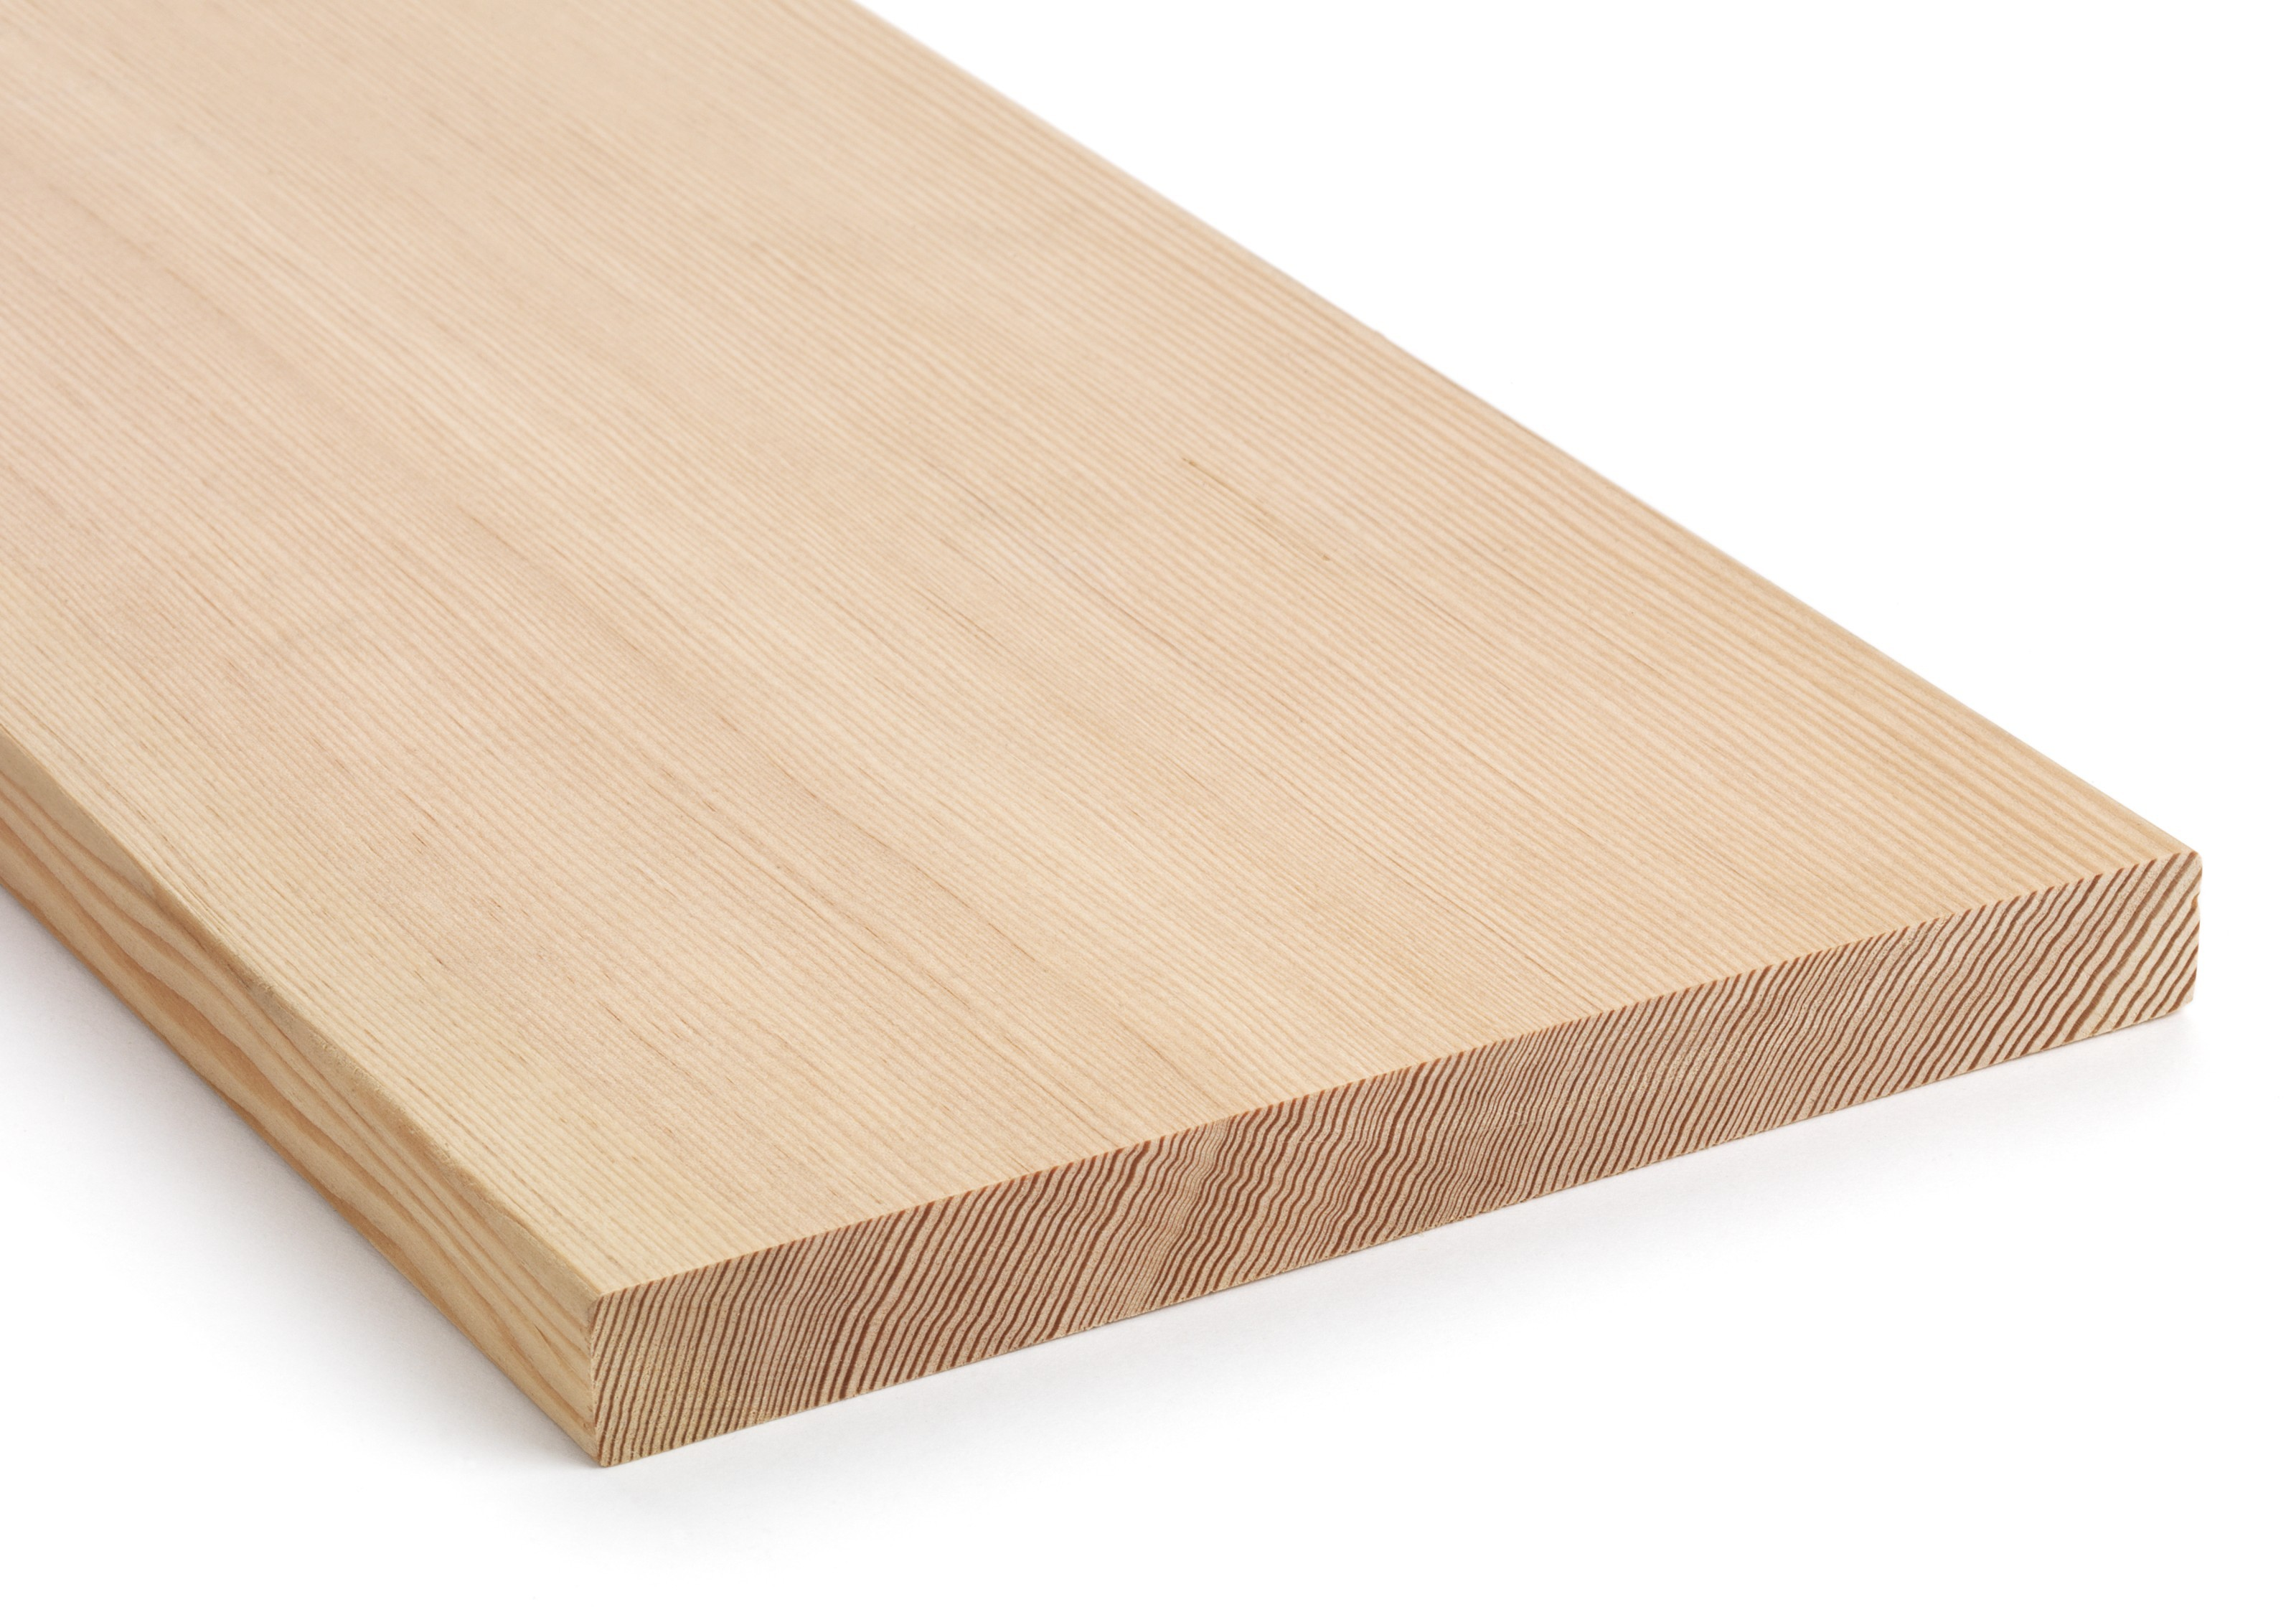 CVG Douglas Fir Trim - 1 x 10